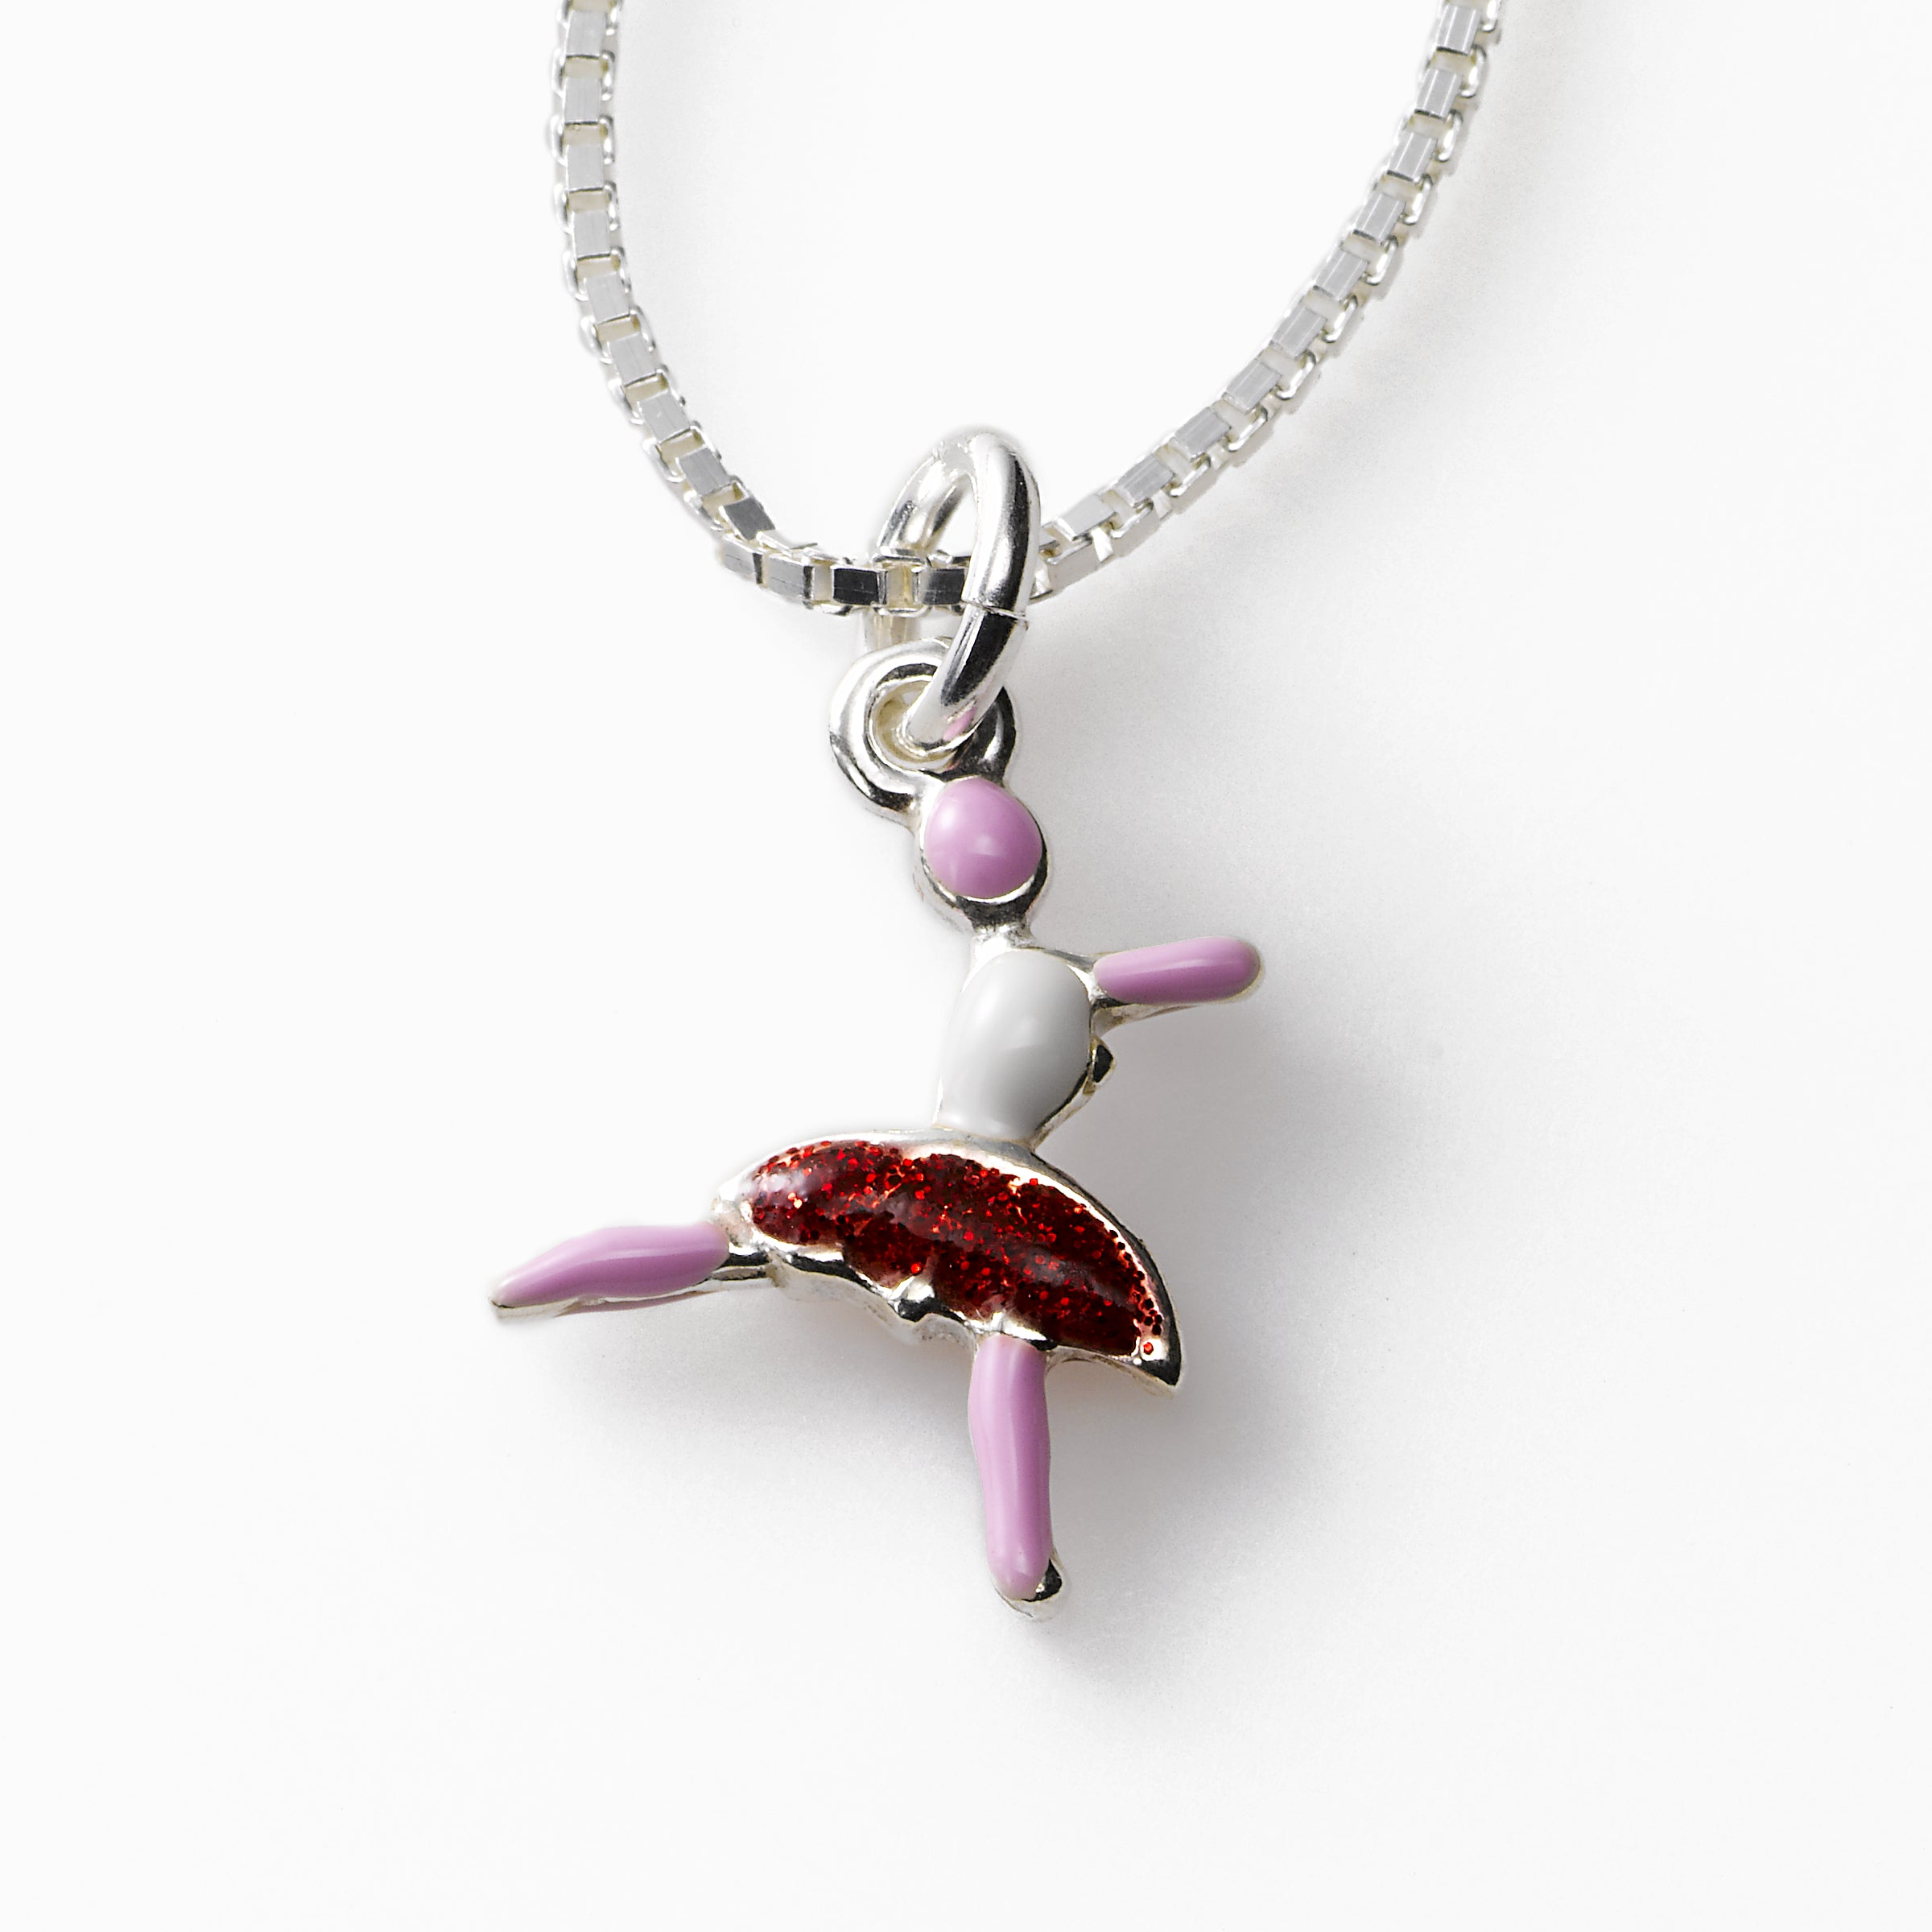 Ballerina Charm Necklace, Sterling Silver